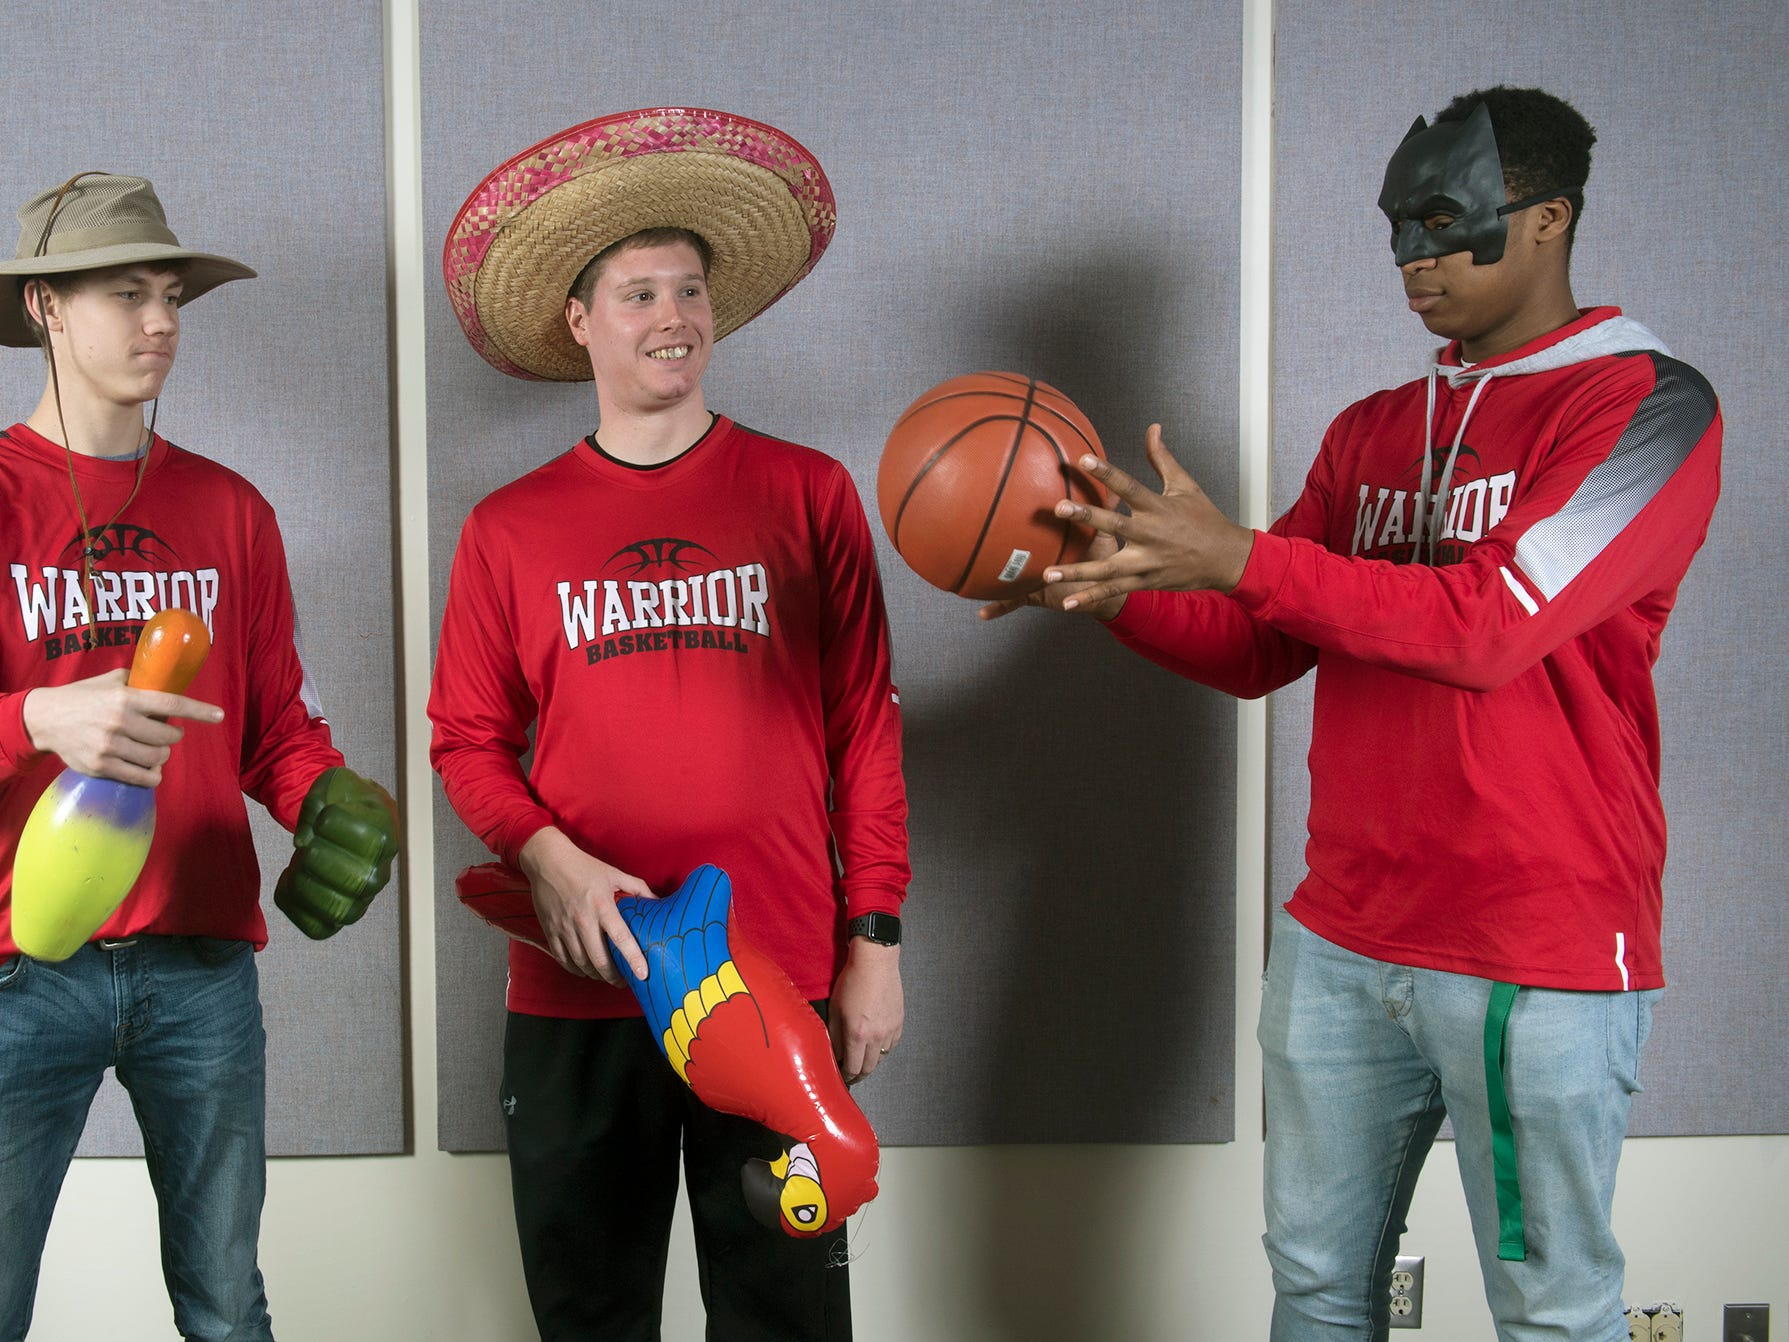 From the left, Noah Miller, Andy Shelow and Will Ogude, of the Susquehannock boys basketball team, pose during the 2018-19 GameTimePa YAIAA Winter Media Day Sunday November 11, 2018.